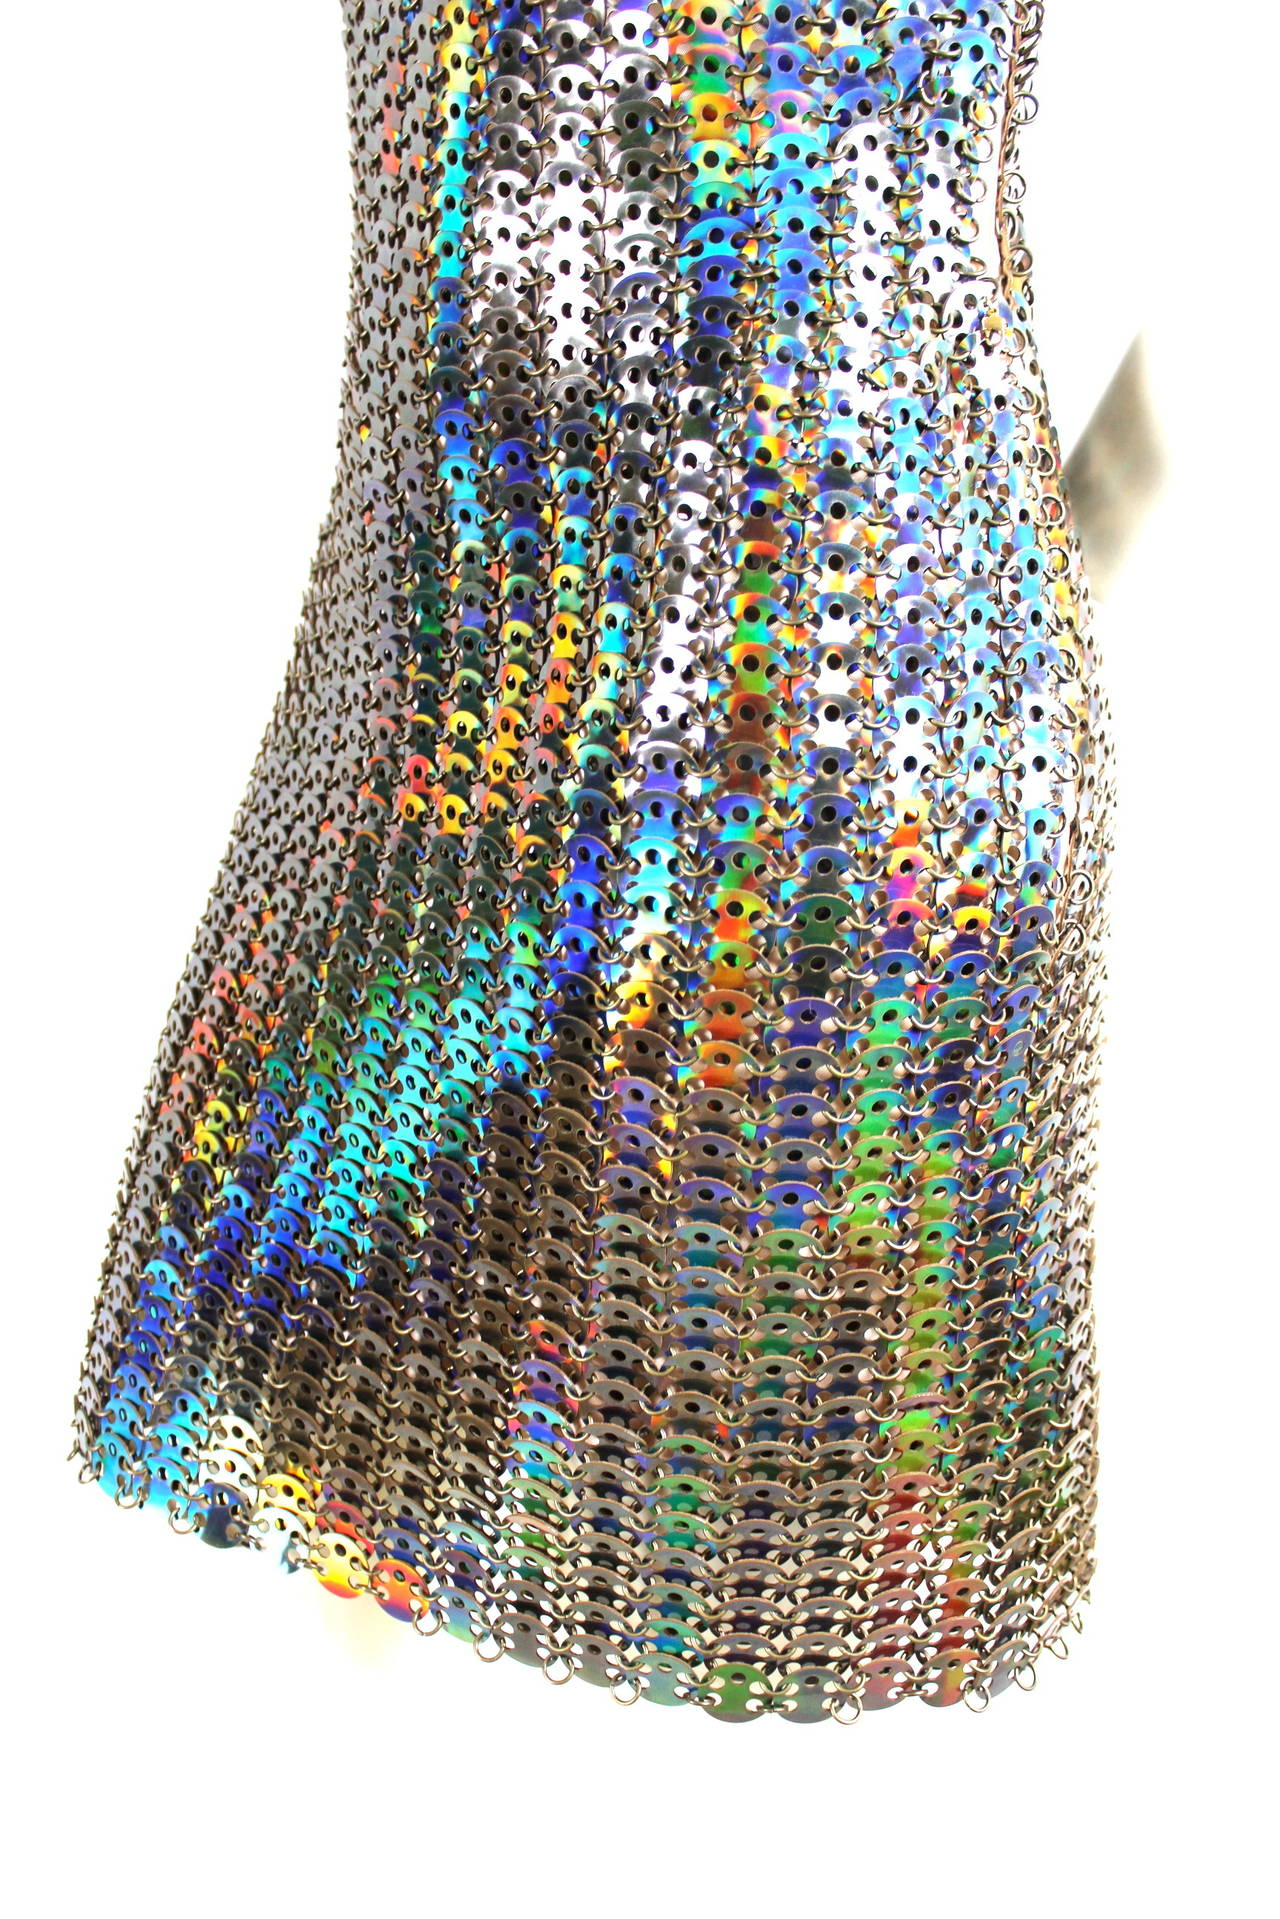 Paco Rabanne Holographic Runway Disc Dress For Sale 3